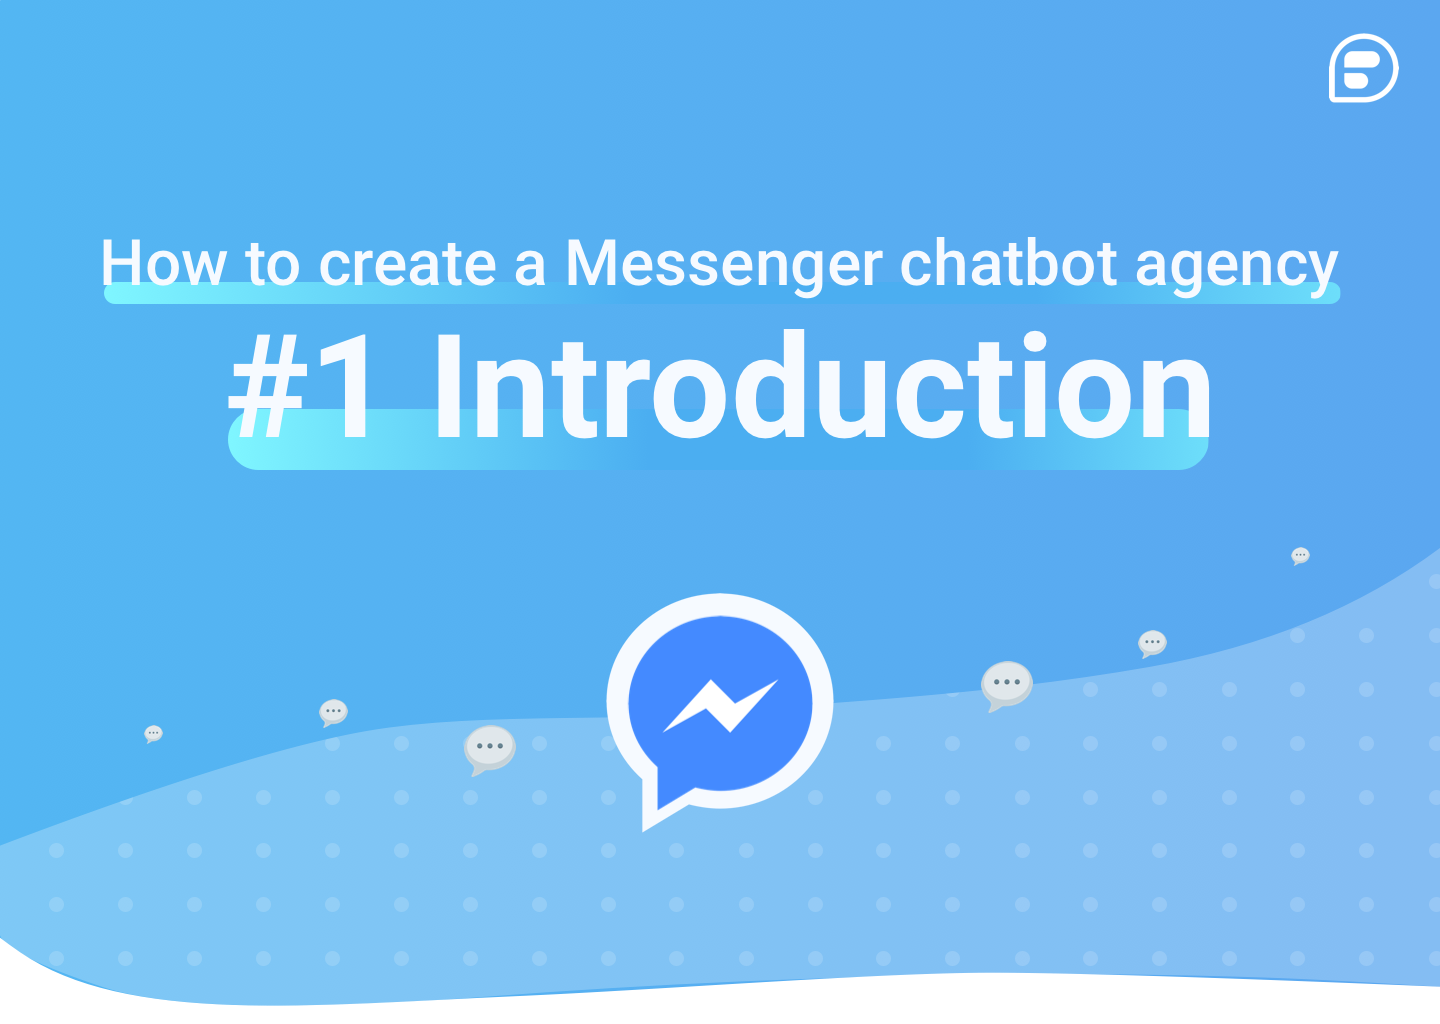 https://www.chatbot-plus.com/how-to-create-a-chatbot-agency/